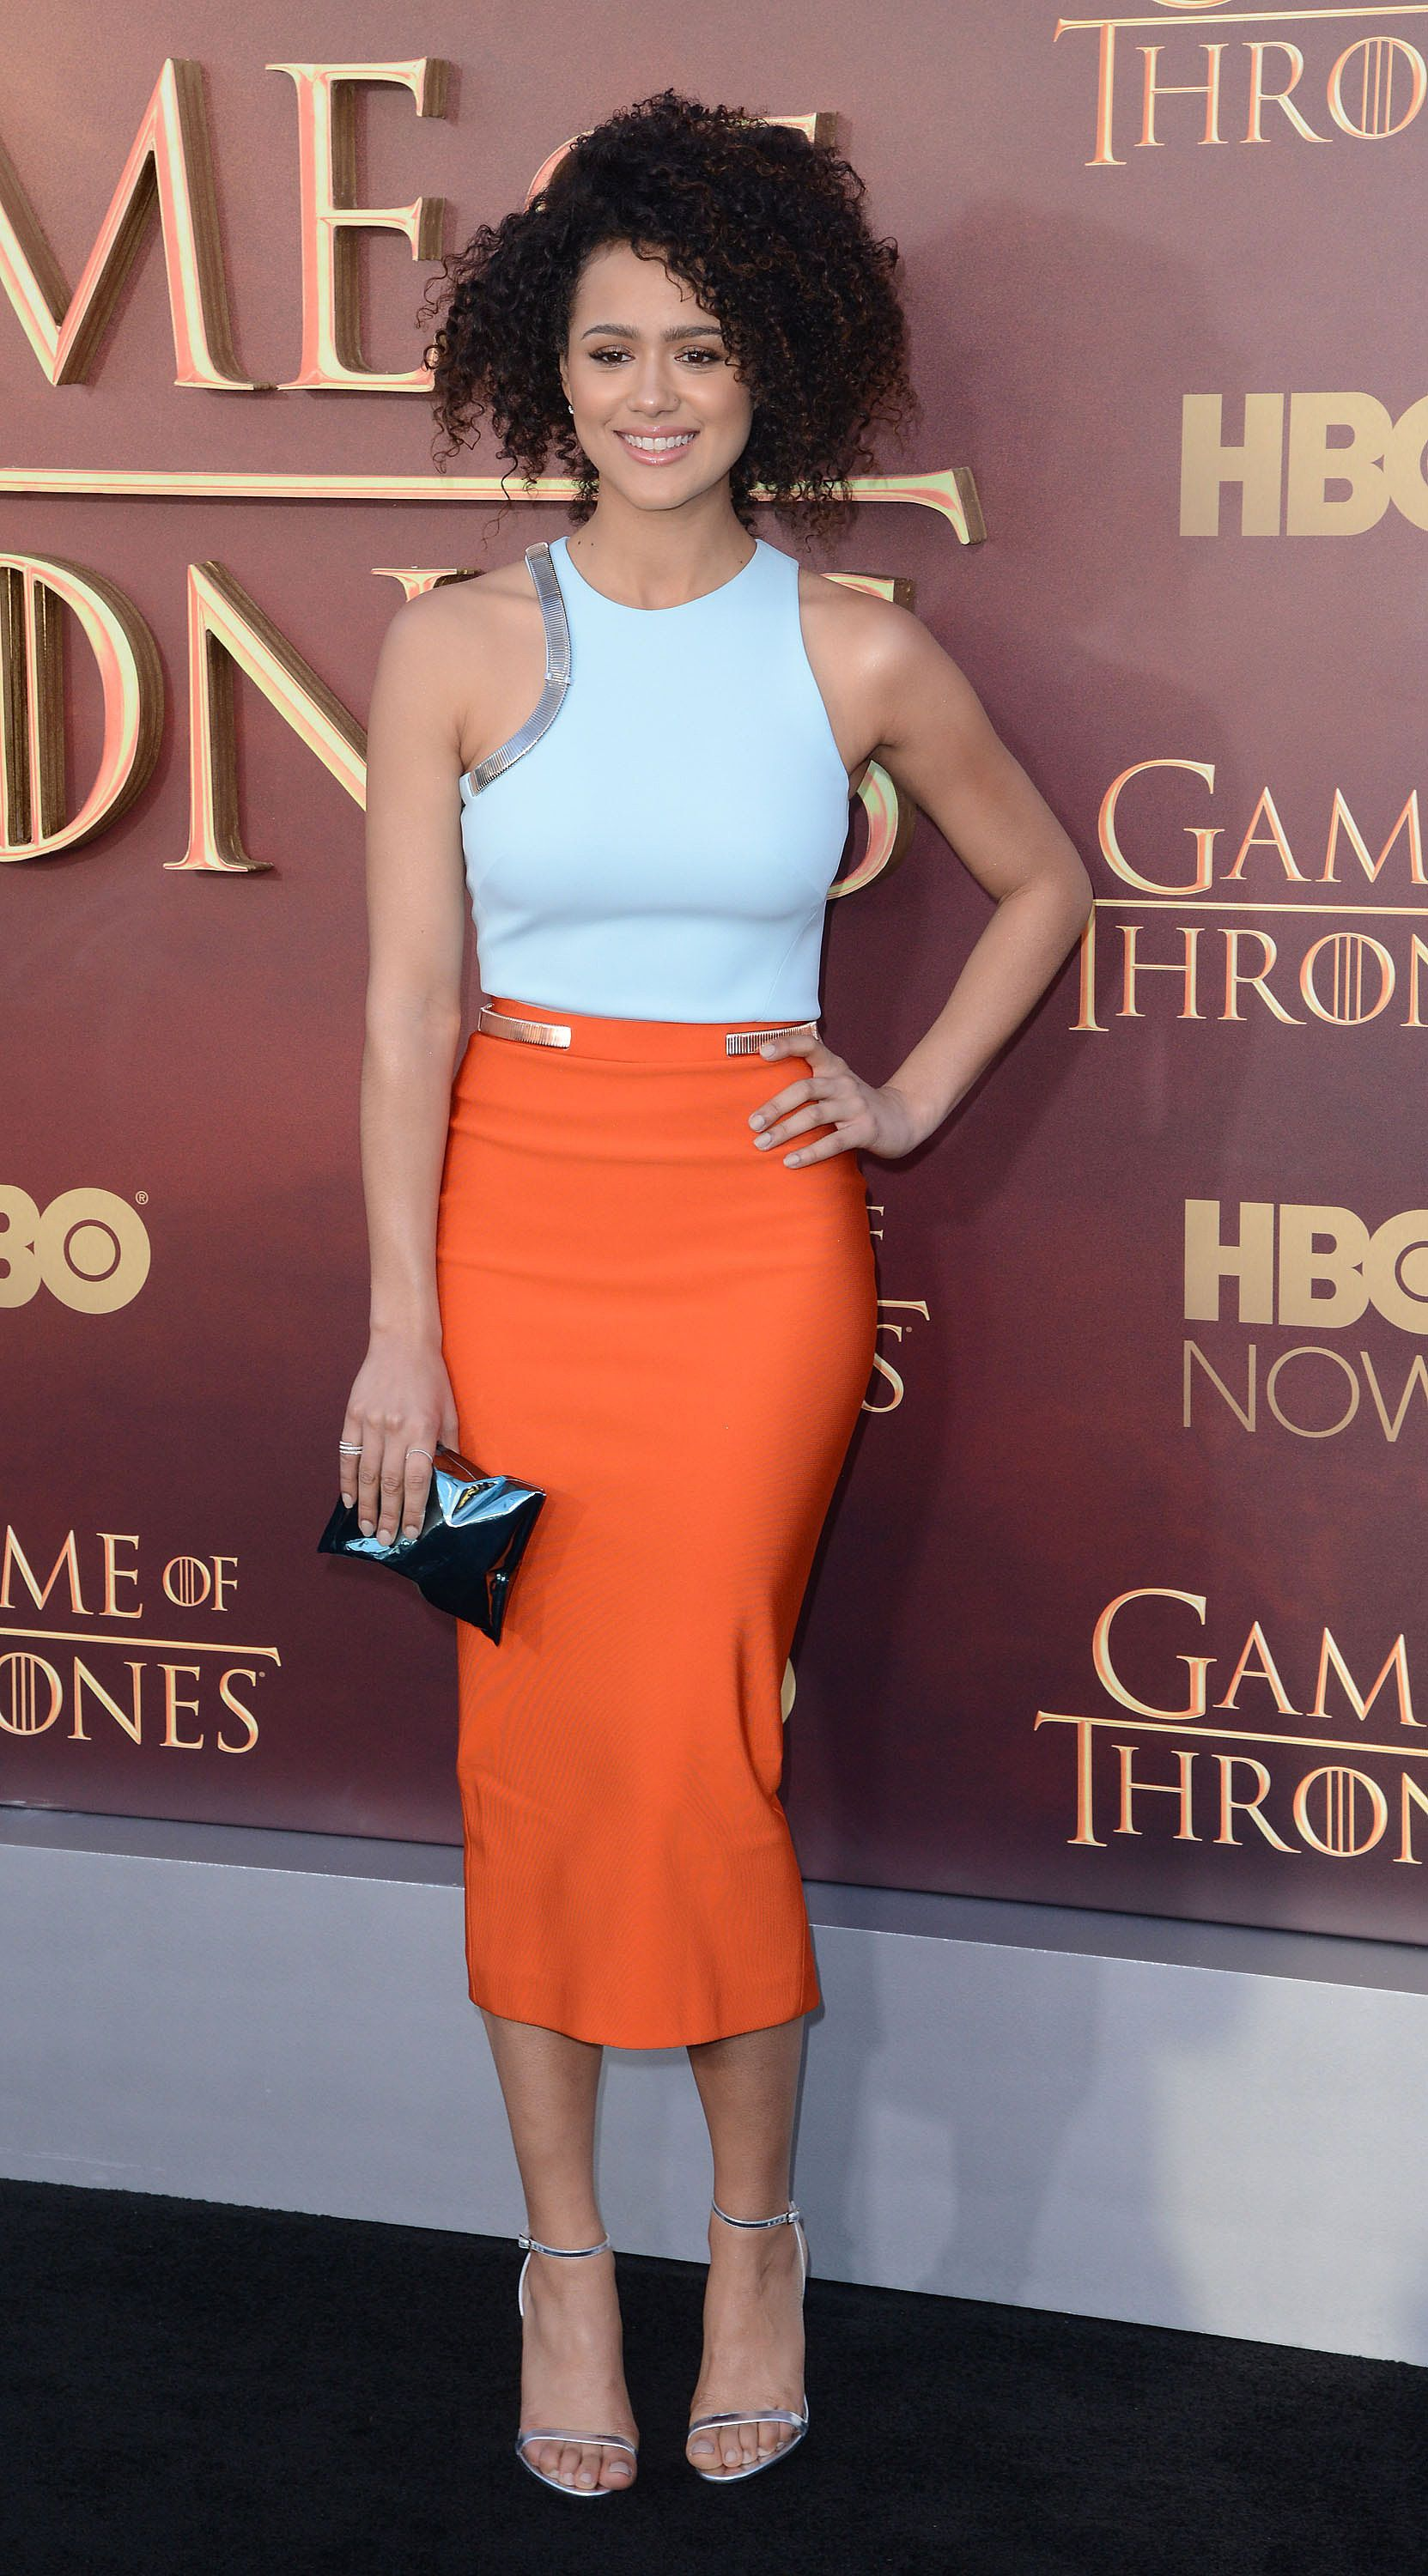 nathalie emmanuel | pinterest | nathalie emmanuel, celebrity and